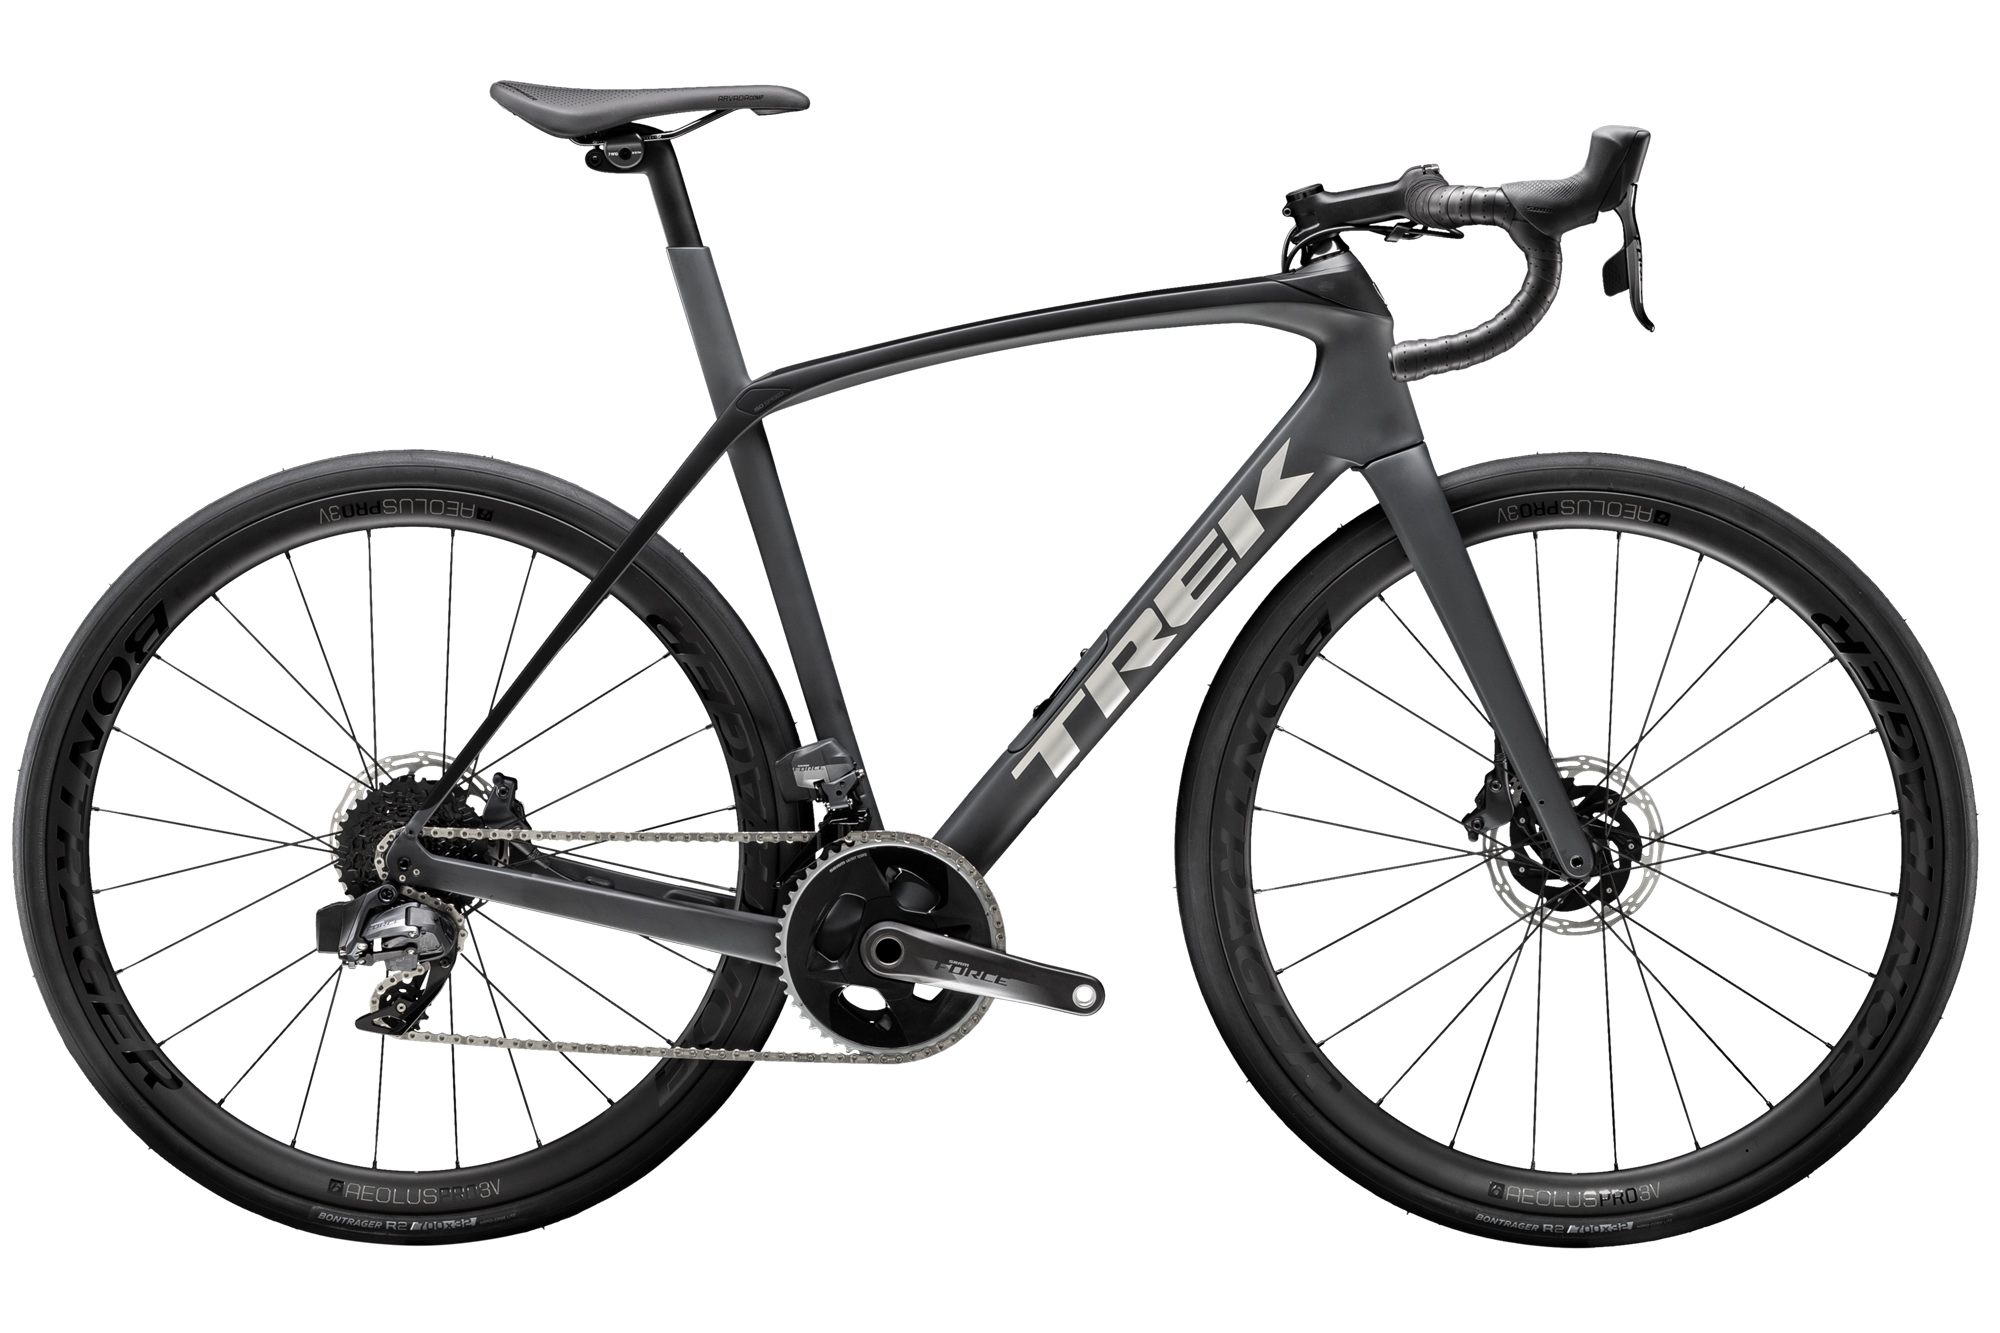 New Trek Domane is more aero, integrated and ready for